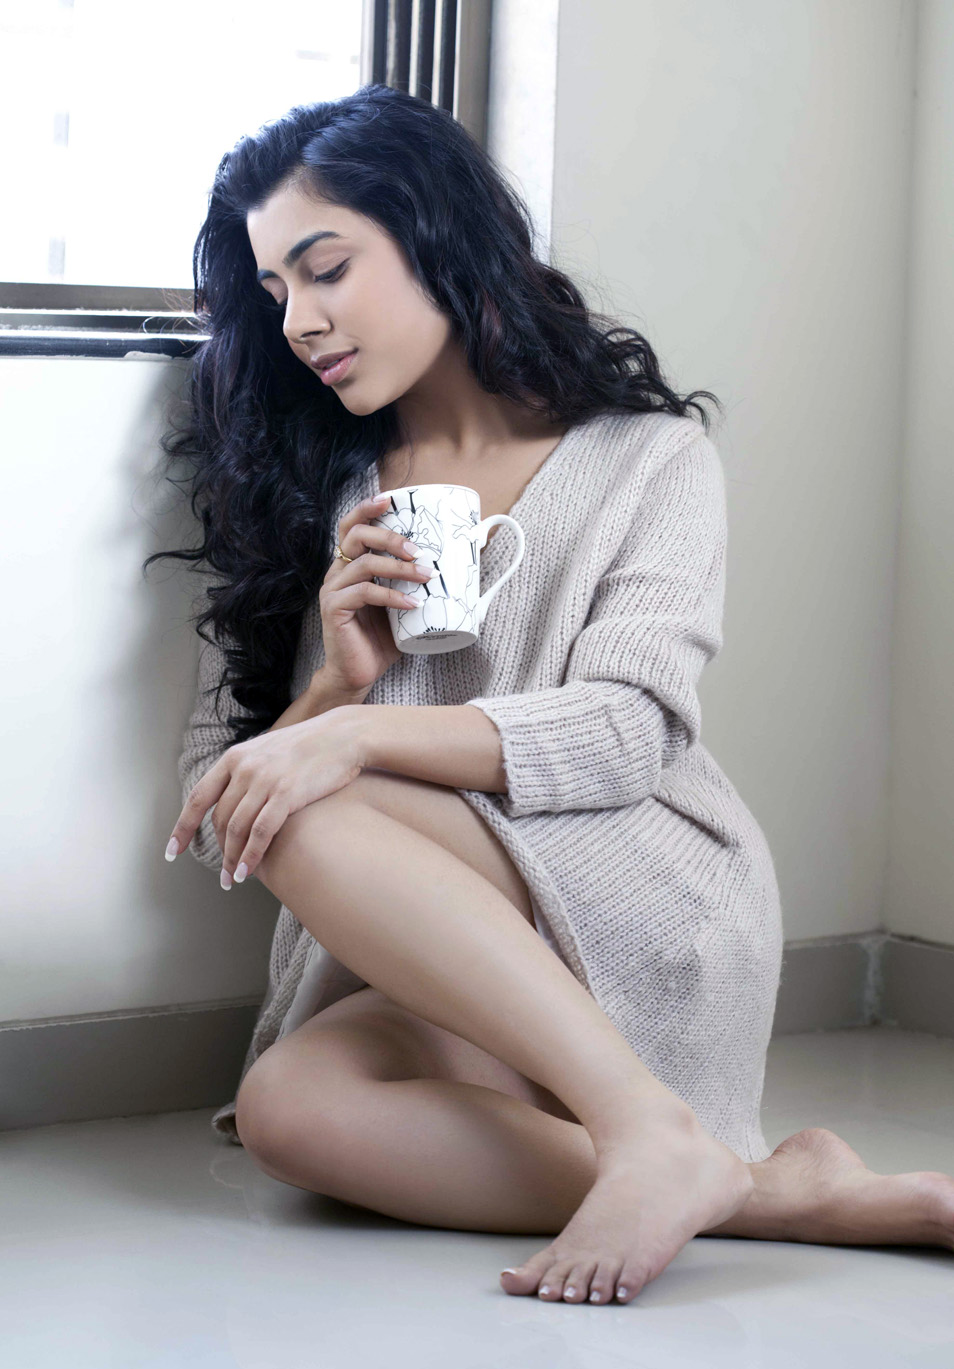 glorious and beloved Bhumika chabria latest hot photos